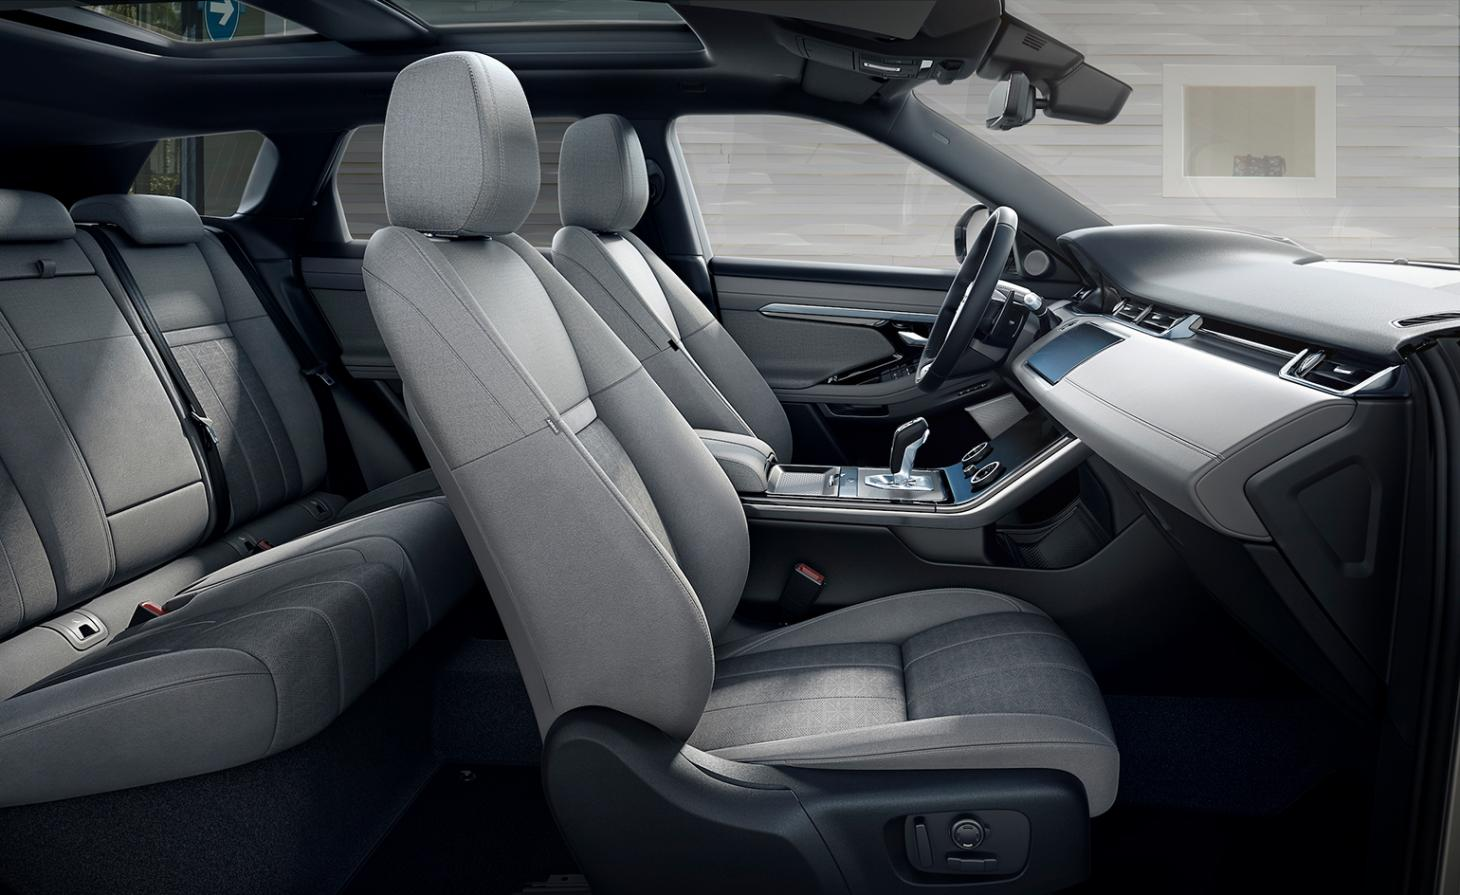 Inside the Range Rover Evoque, with Kvadrat textiles